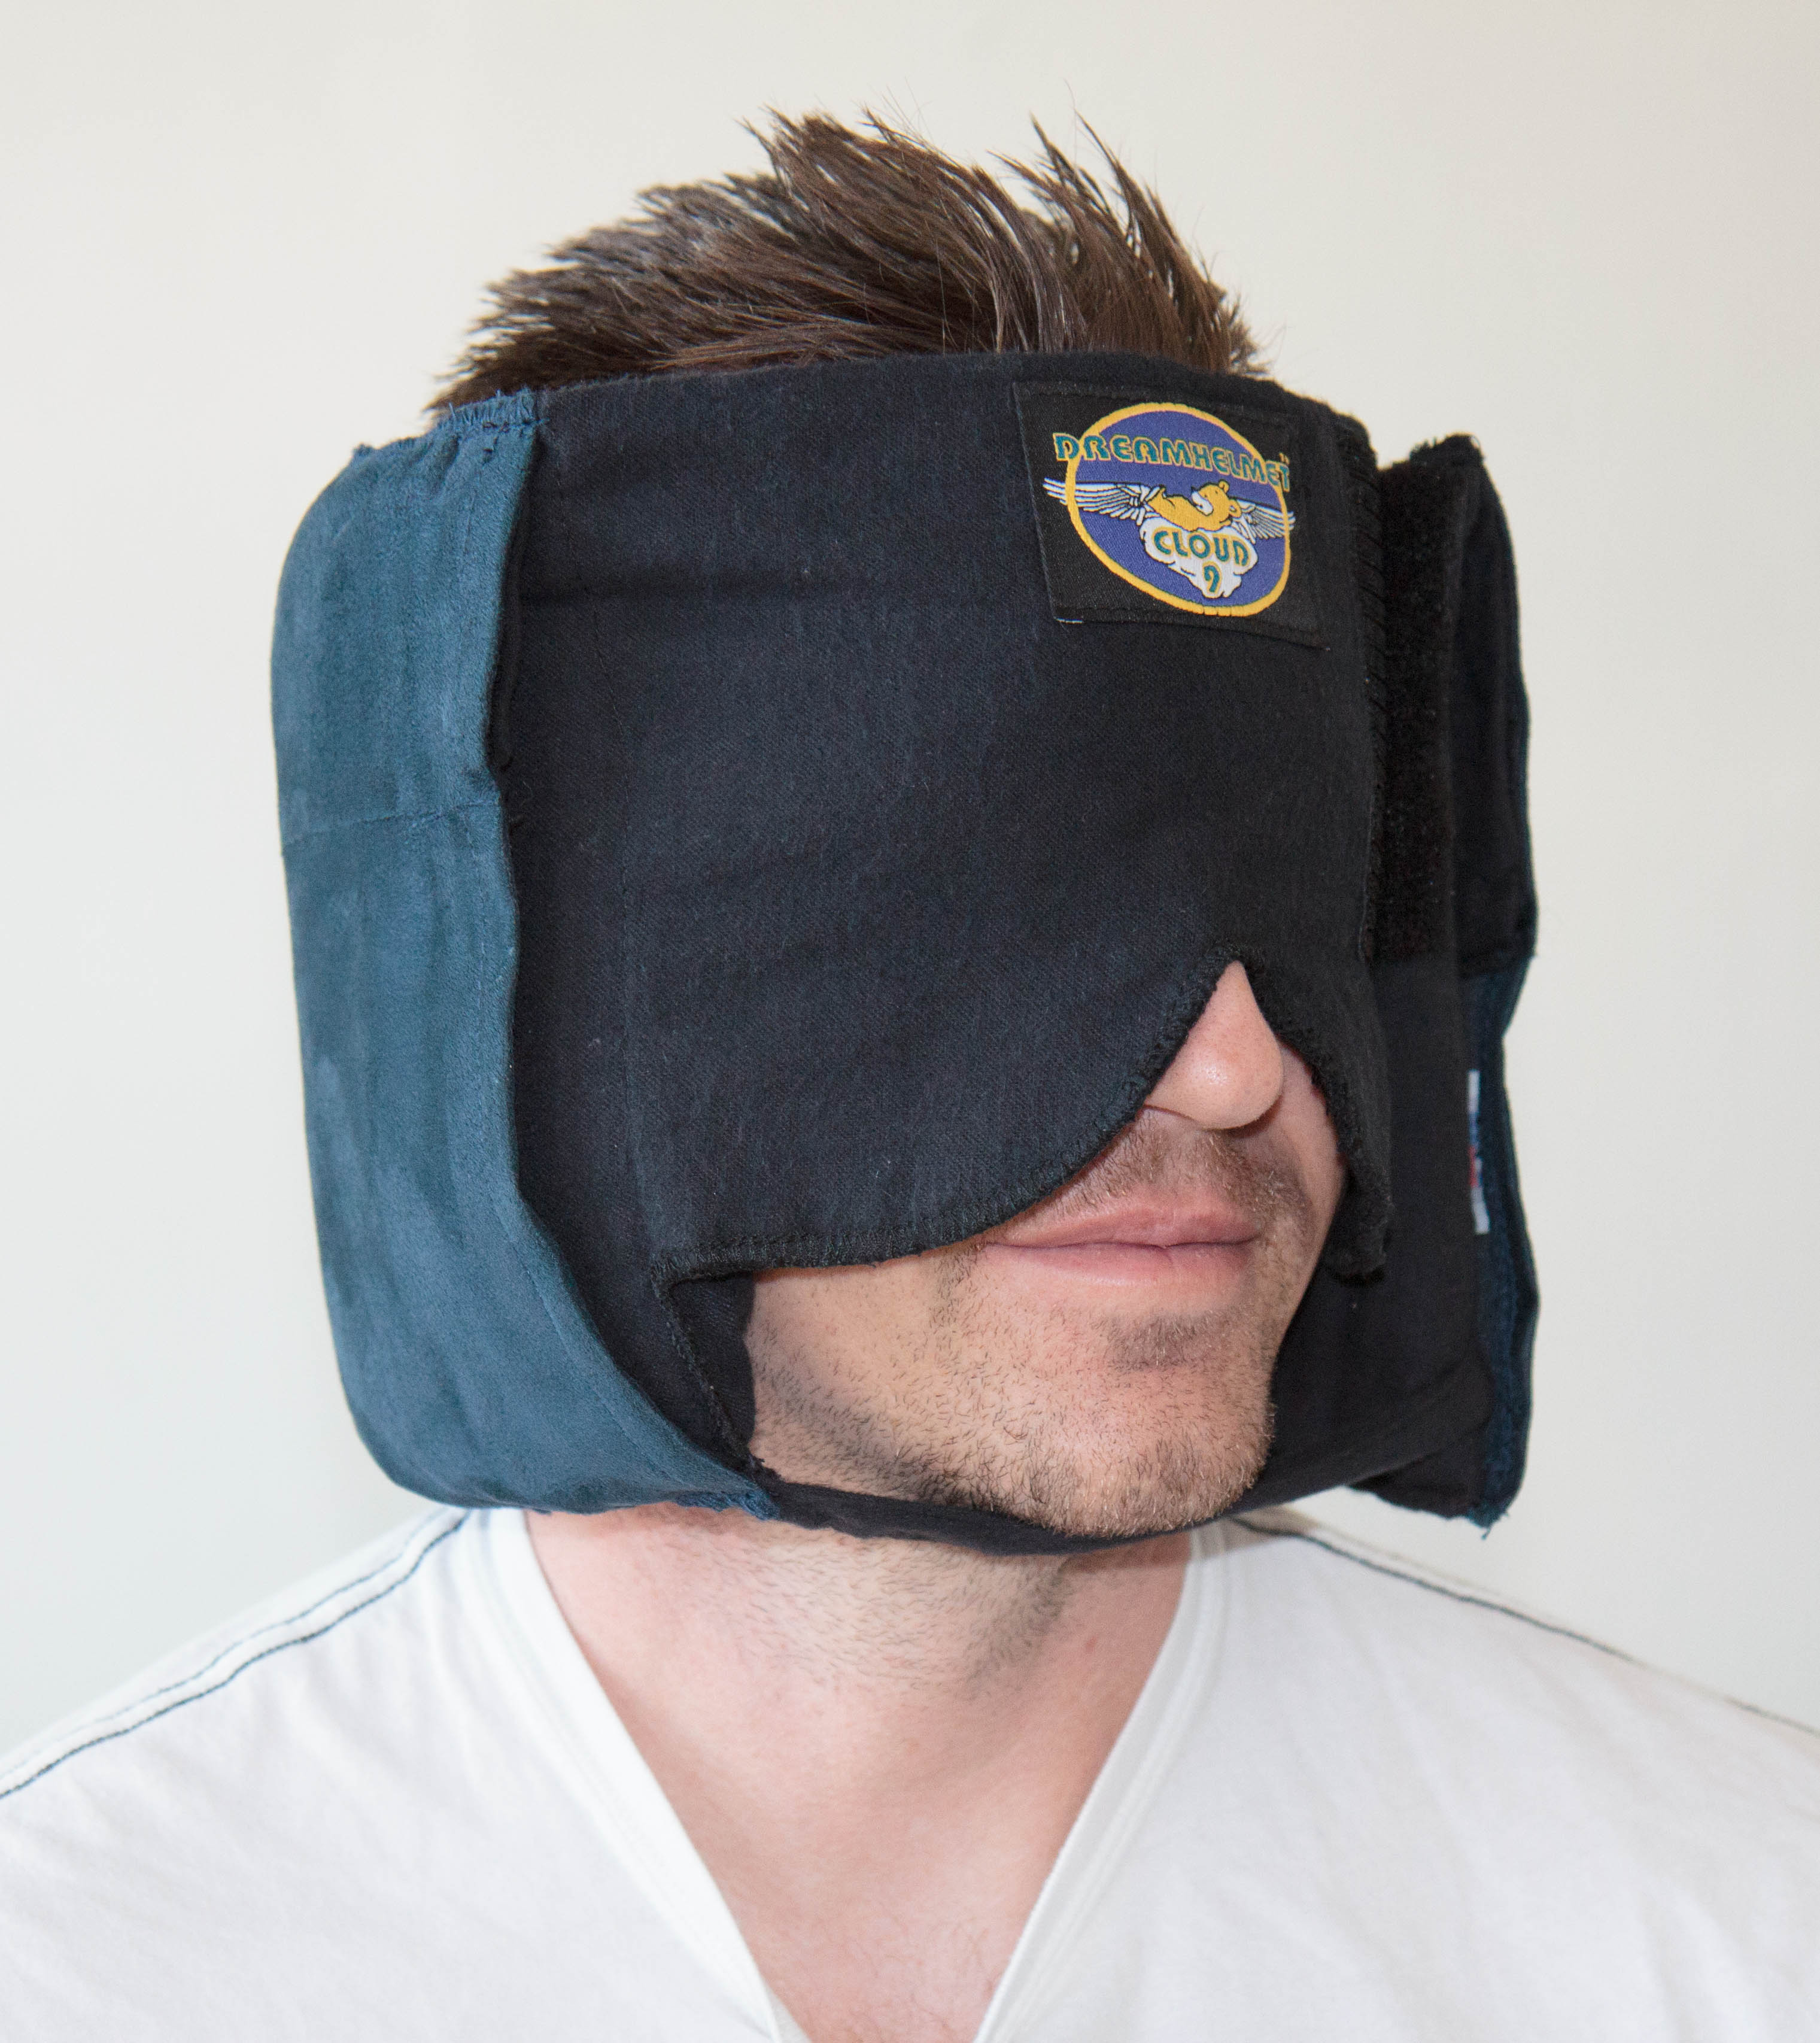 How The Dreamhelmet Sleep Mask Became A Notice Board To